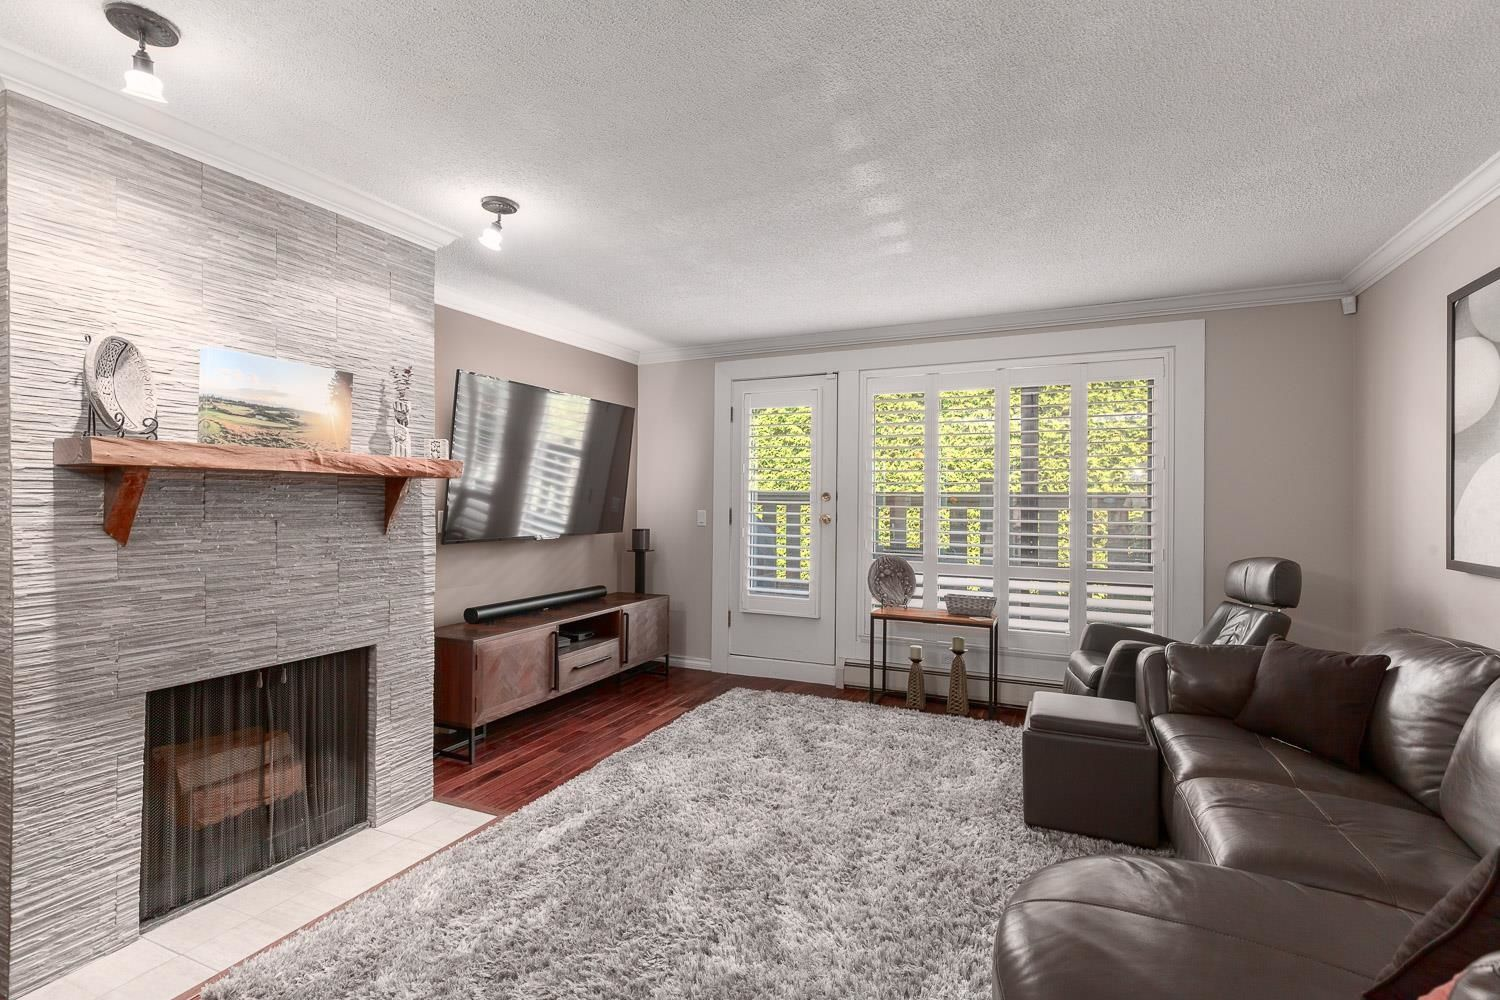 """Main Photo: 105 2455 YORK Avenue in Vancouver: Kitsilano Condo for sale in """"Green Wood York"""" (Vancouver West)  : MLS®# R2617006"""